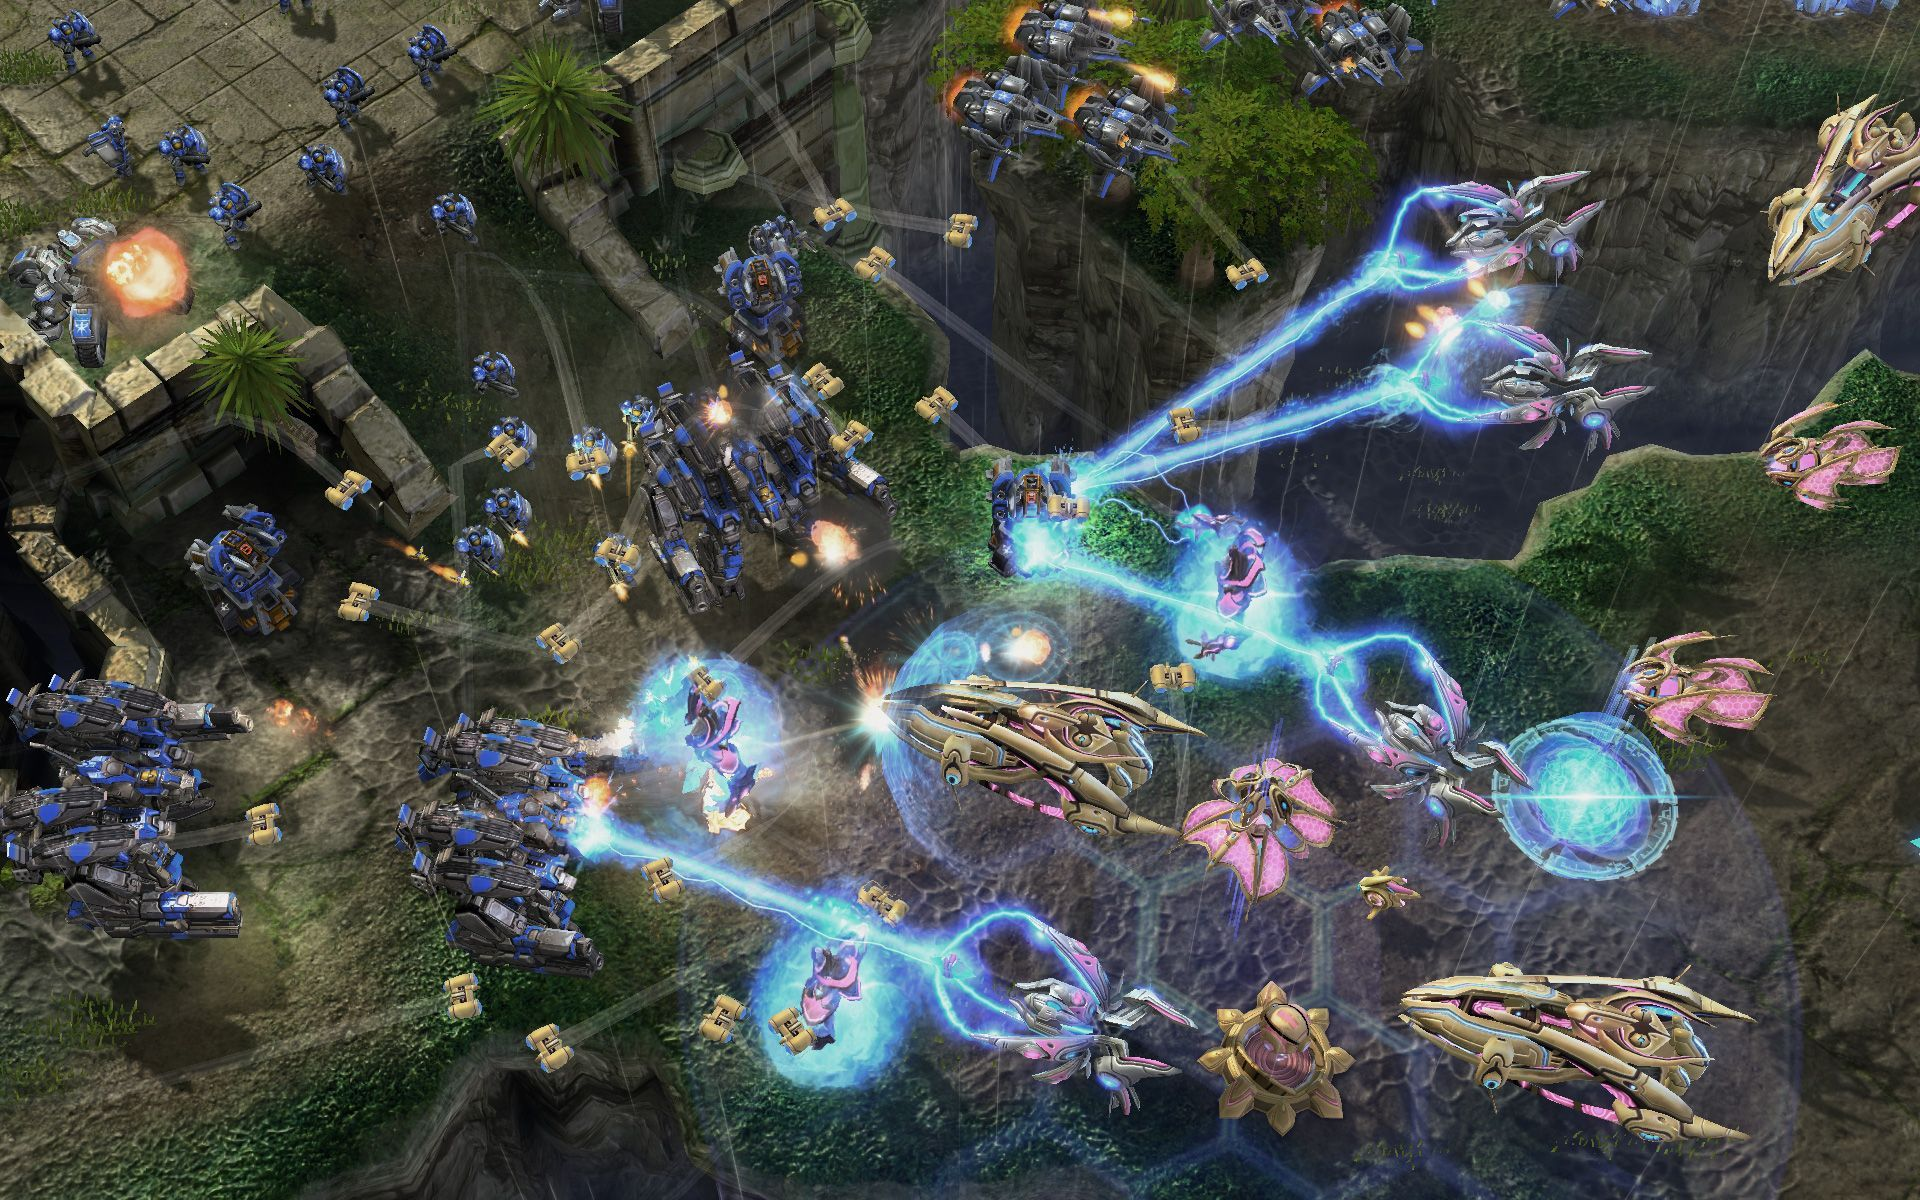 The DeepMind StarCraft AI May Have Been 'Cheating' After All